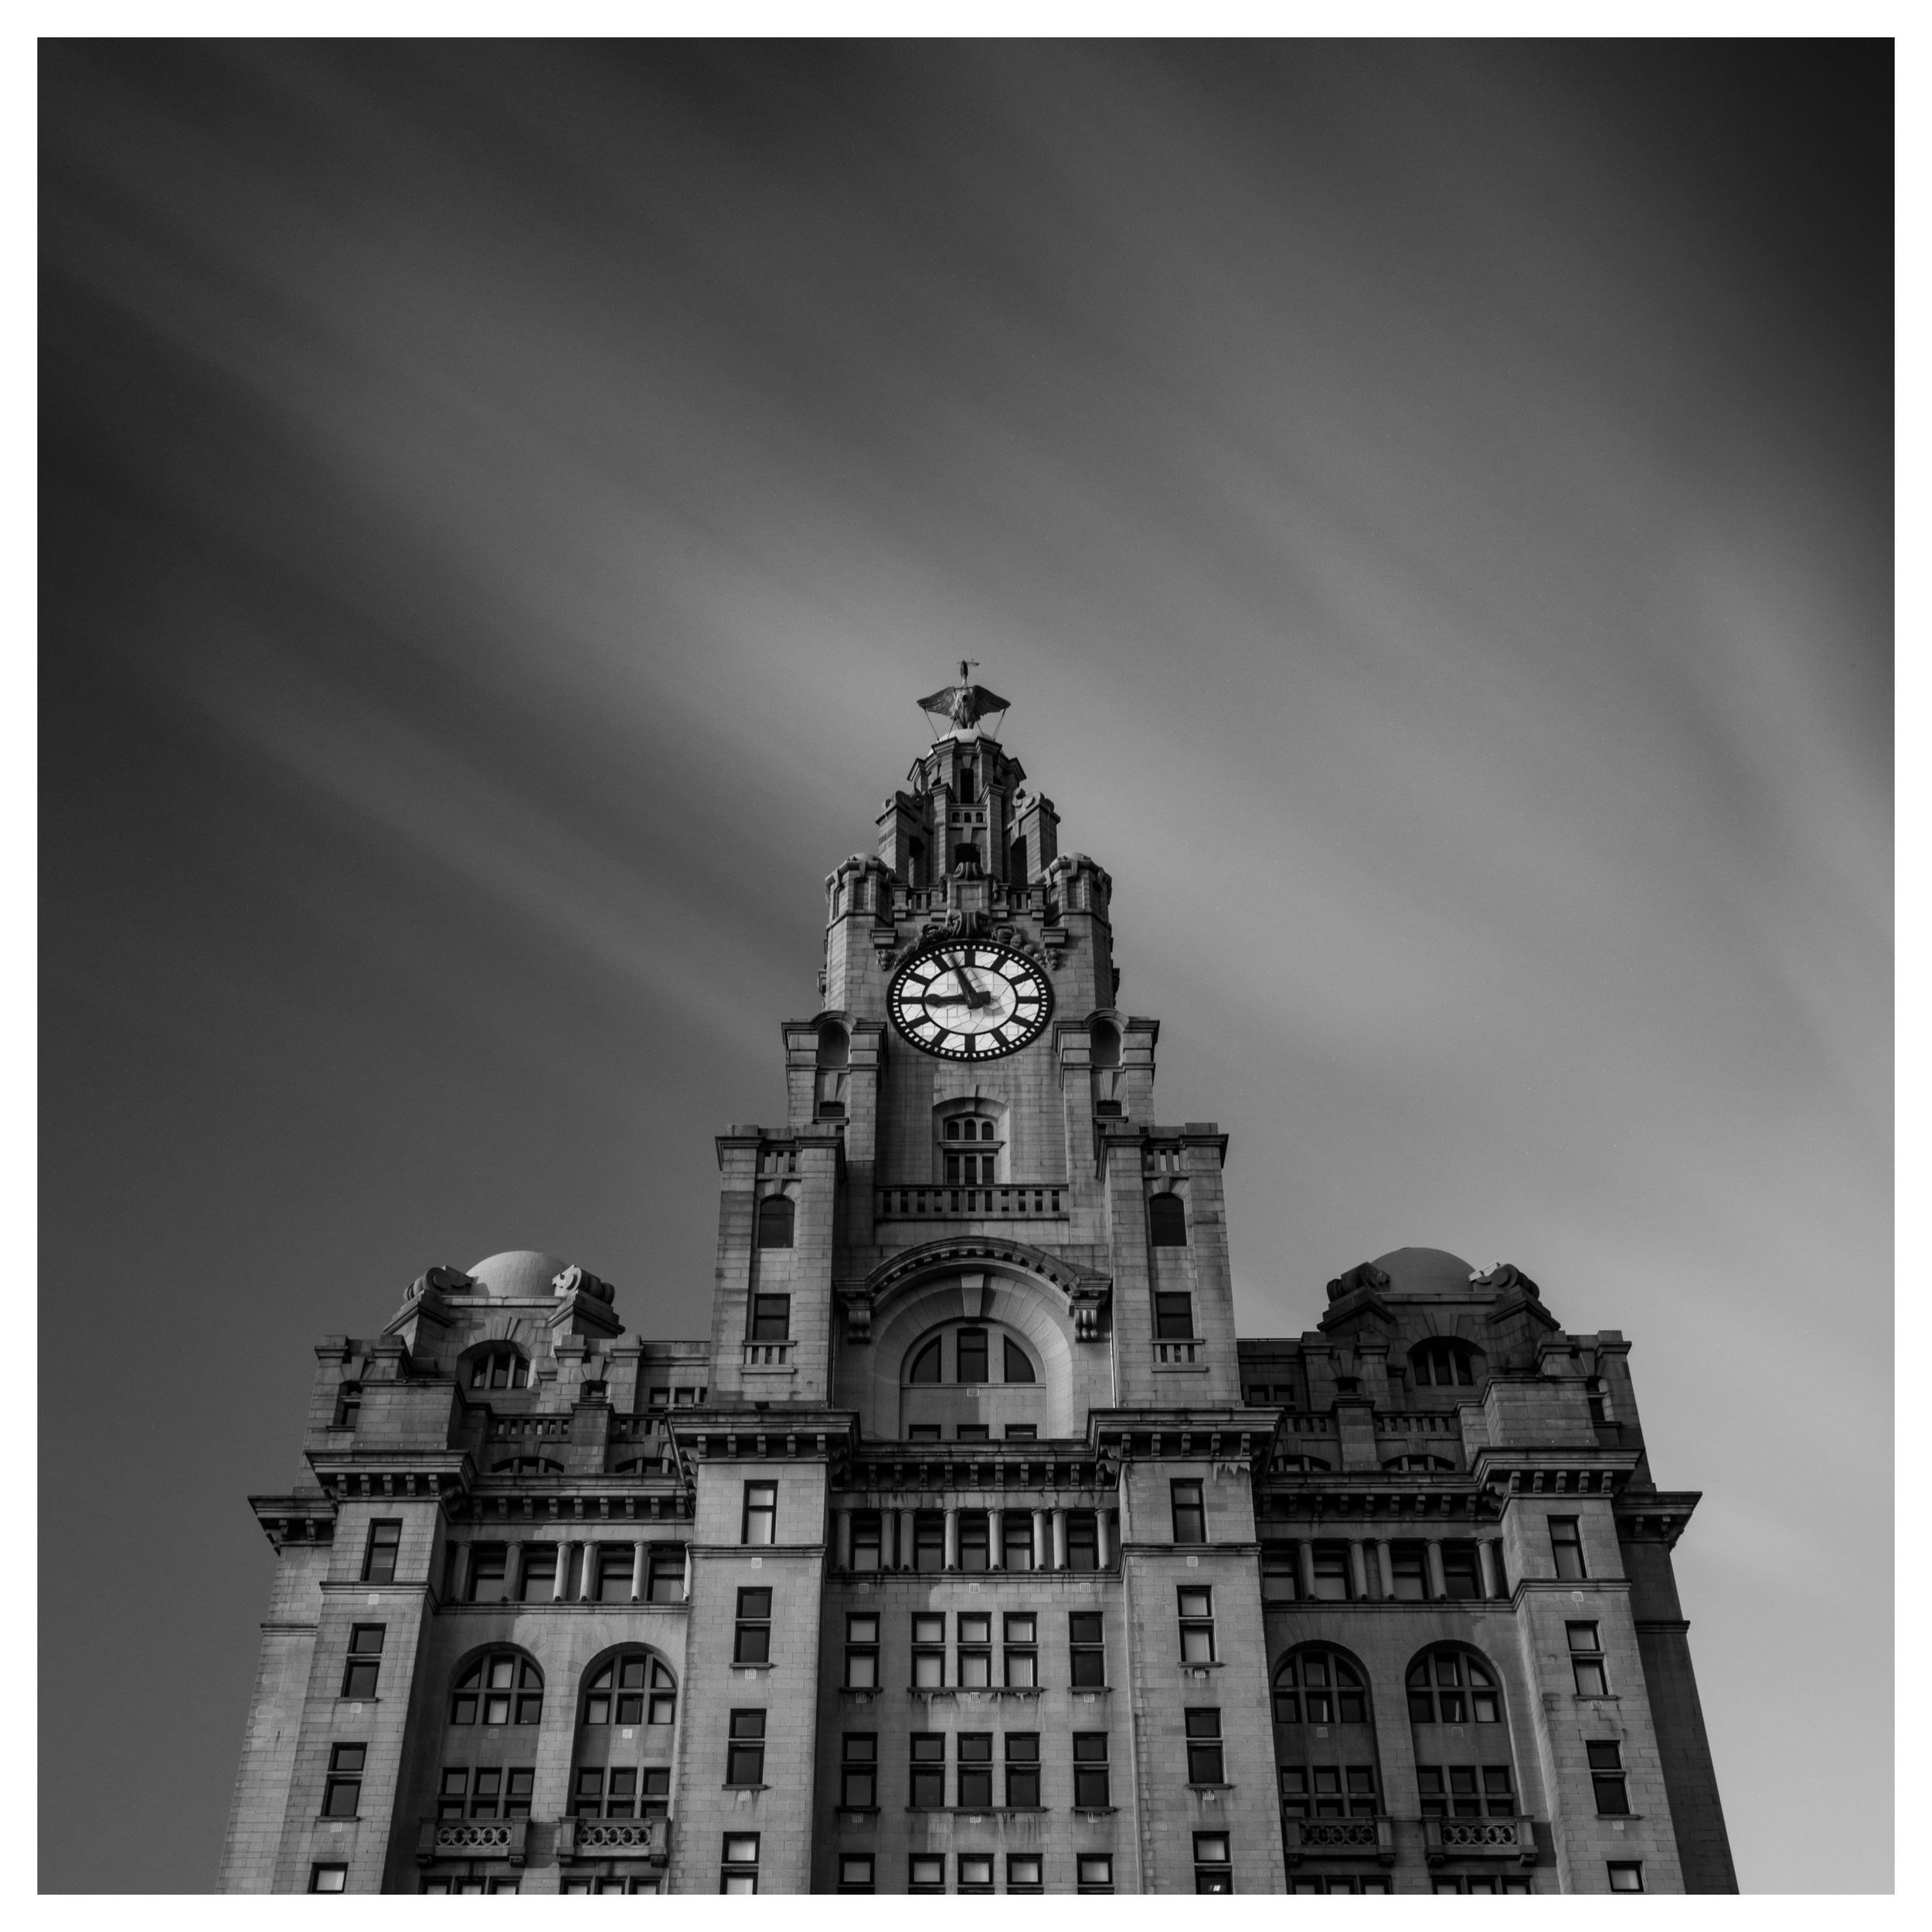 Royal Liver Building, Pier Head